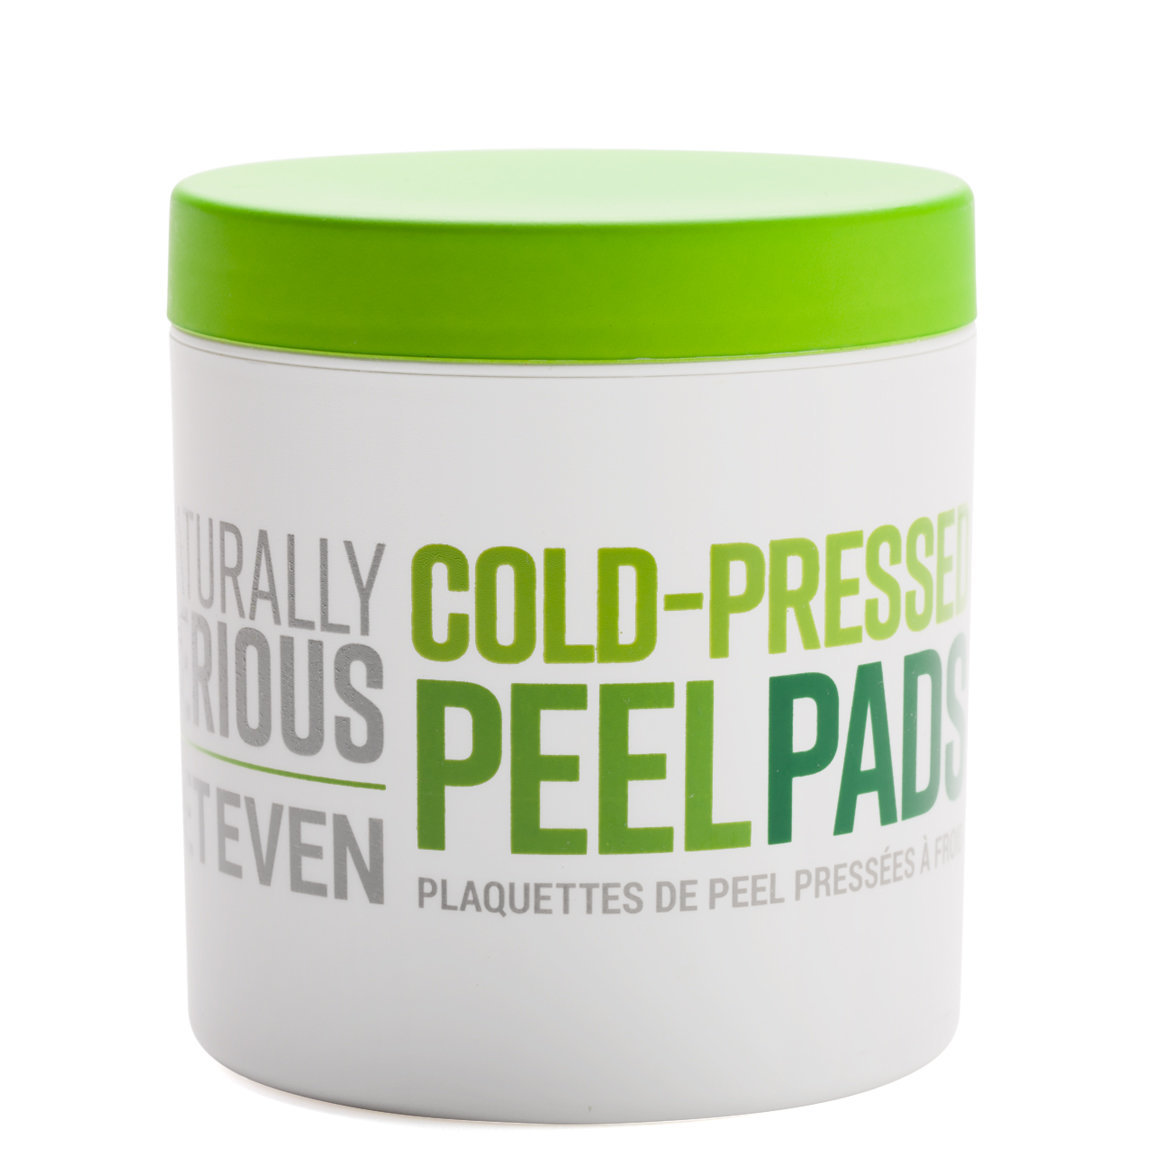 Naturally Serious Get Even Cold-Pressed Peel Pads product smear.